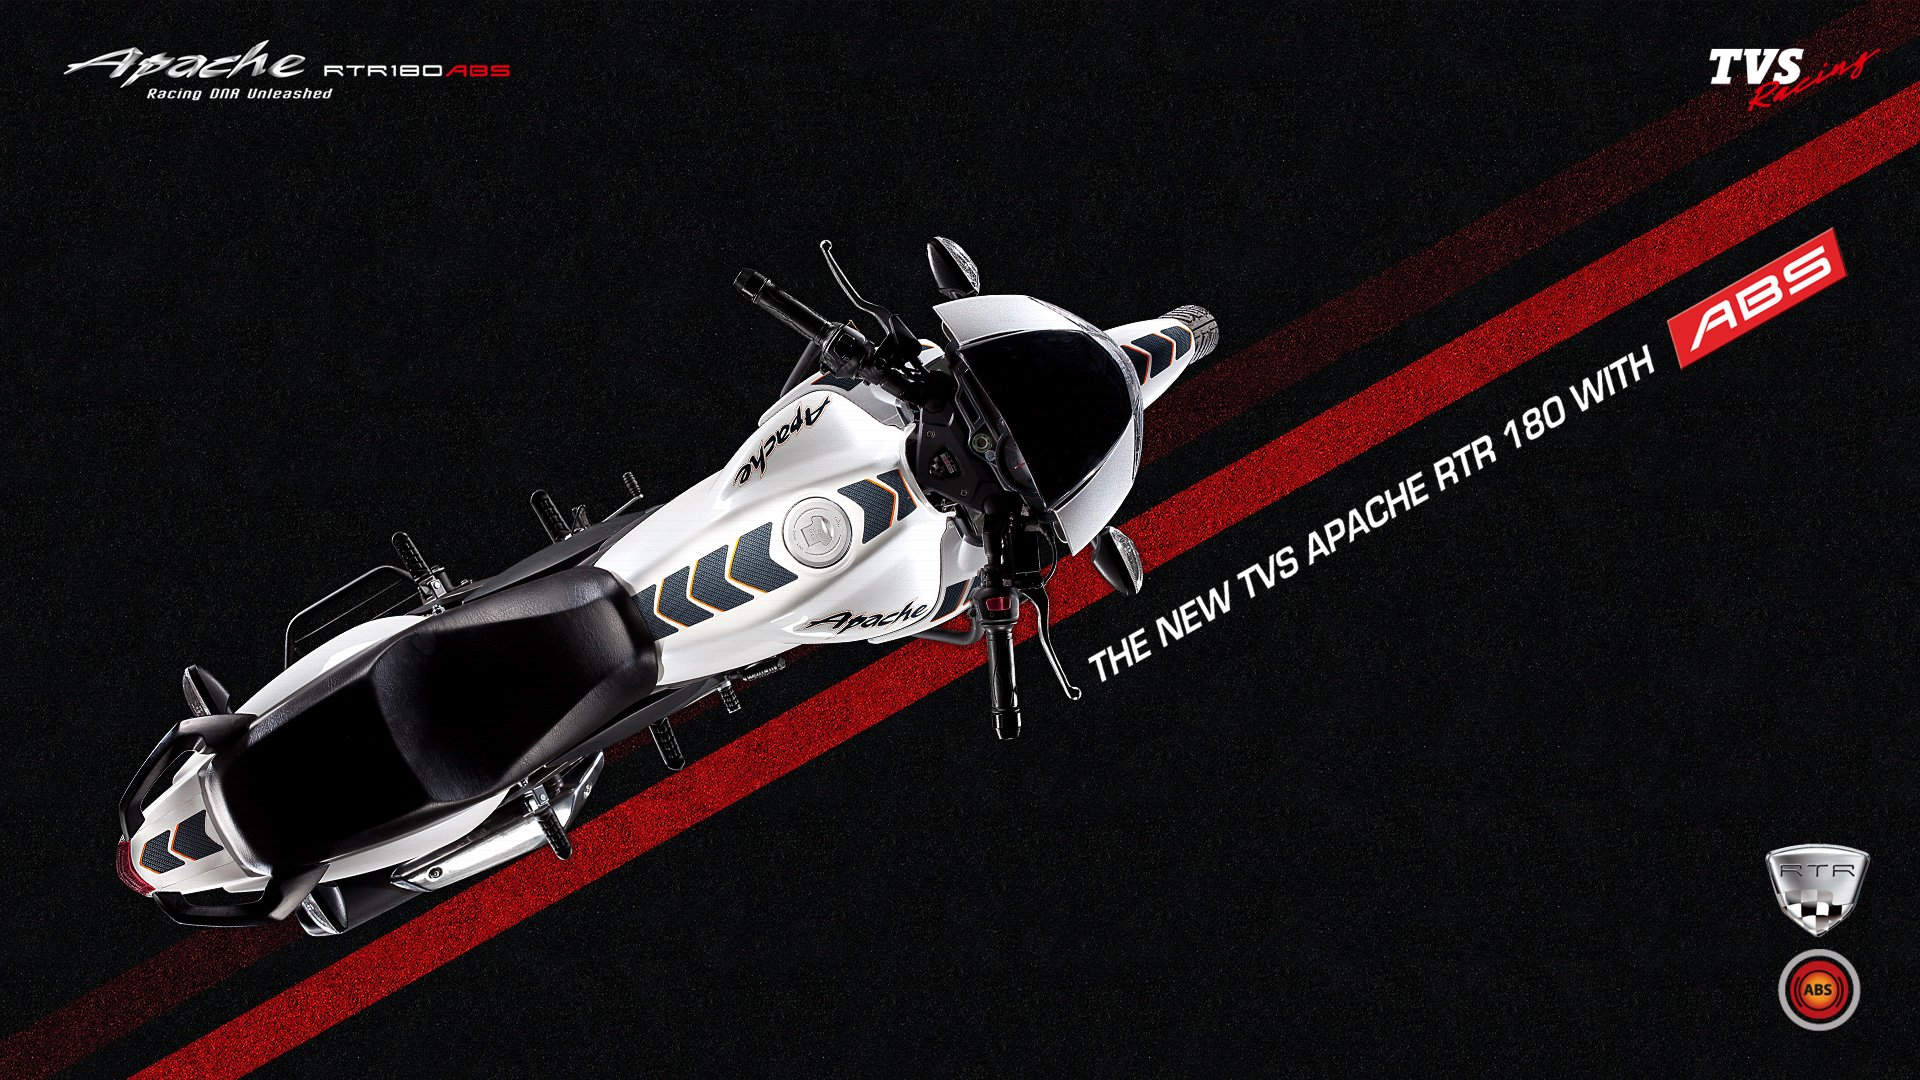 TVS Apache RTR  FI Wallpapers  BikesSale 1920x1080